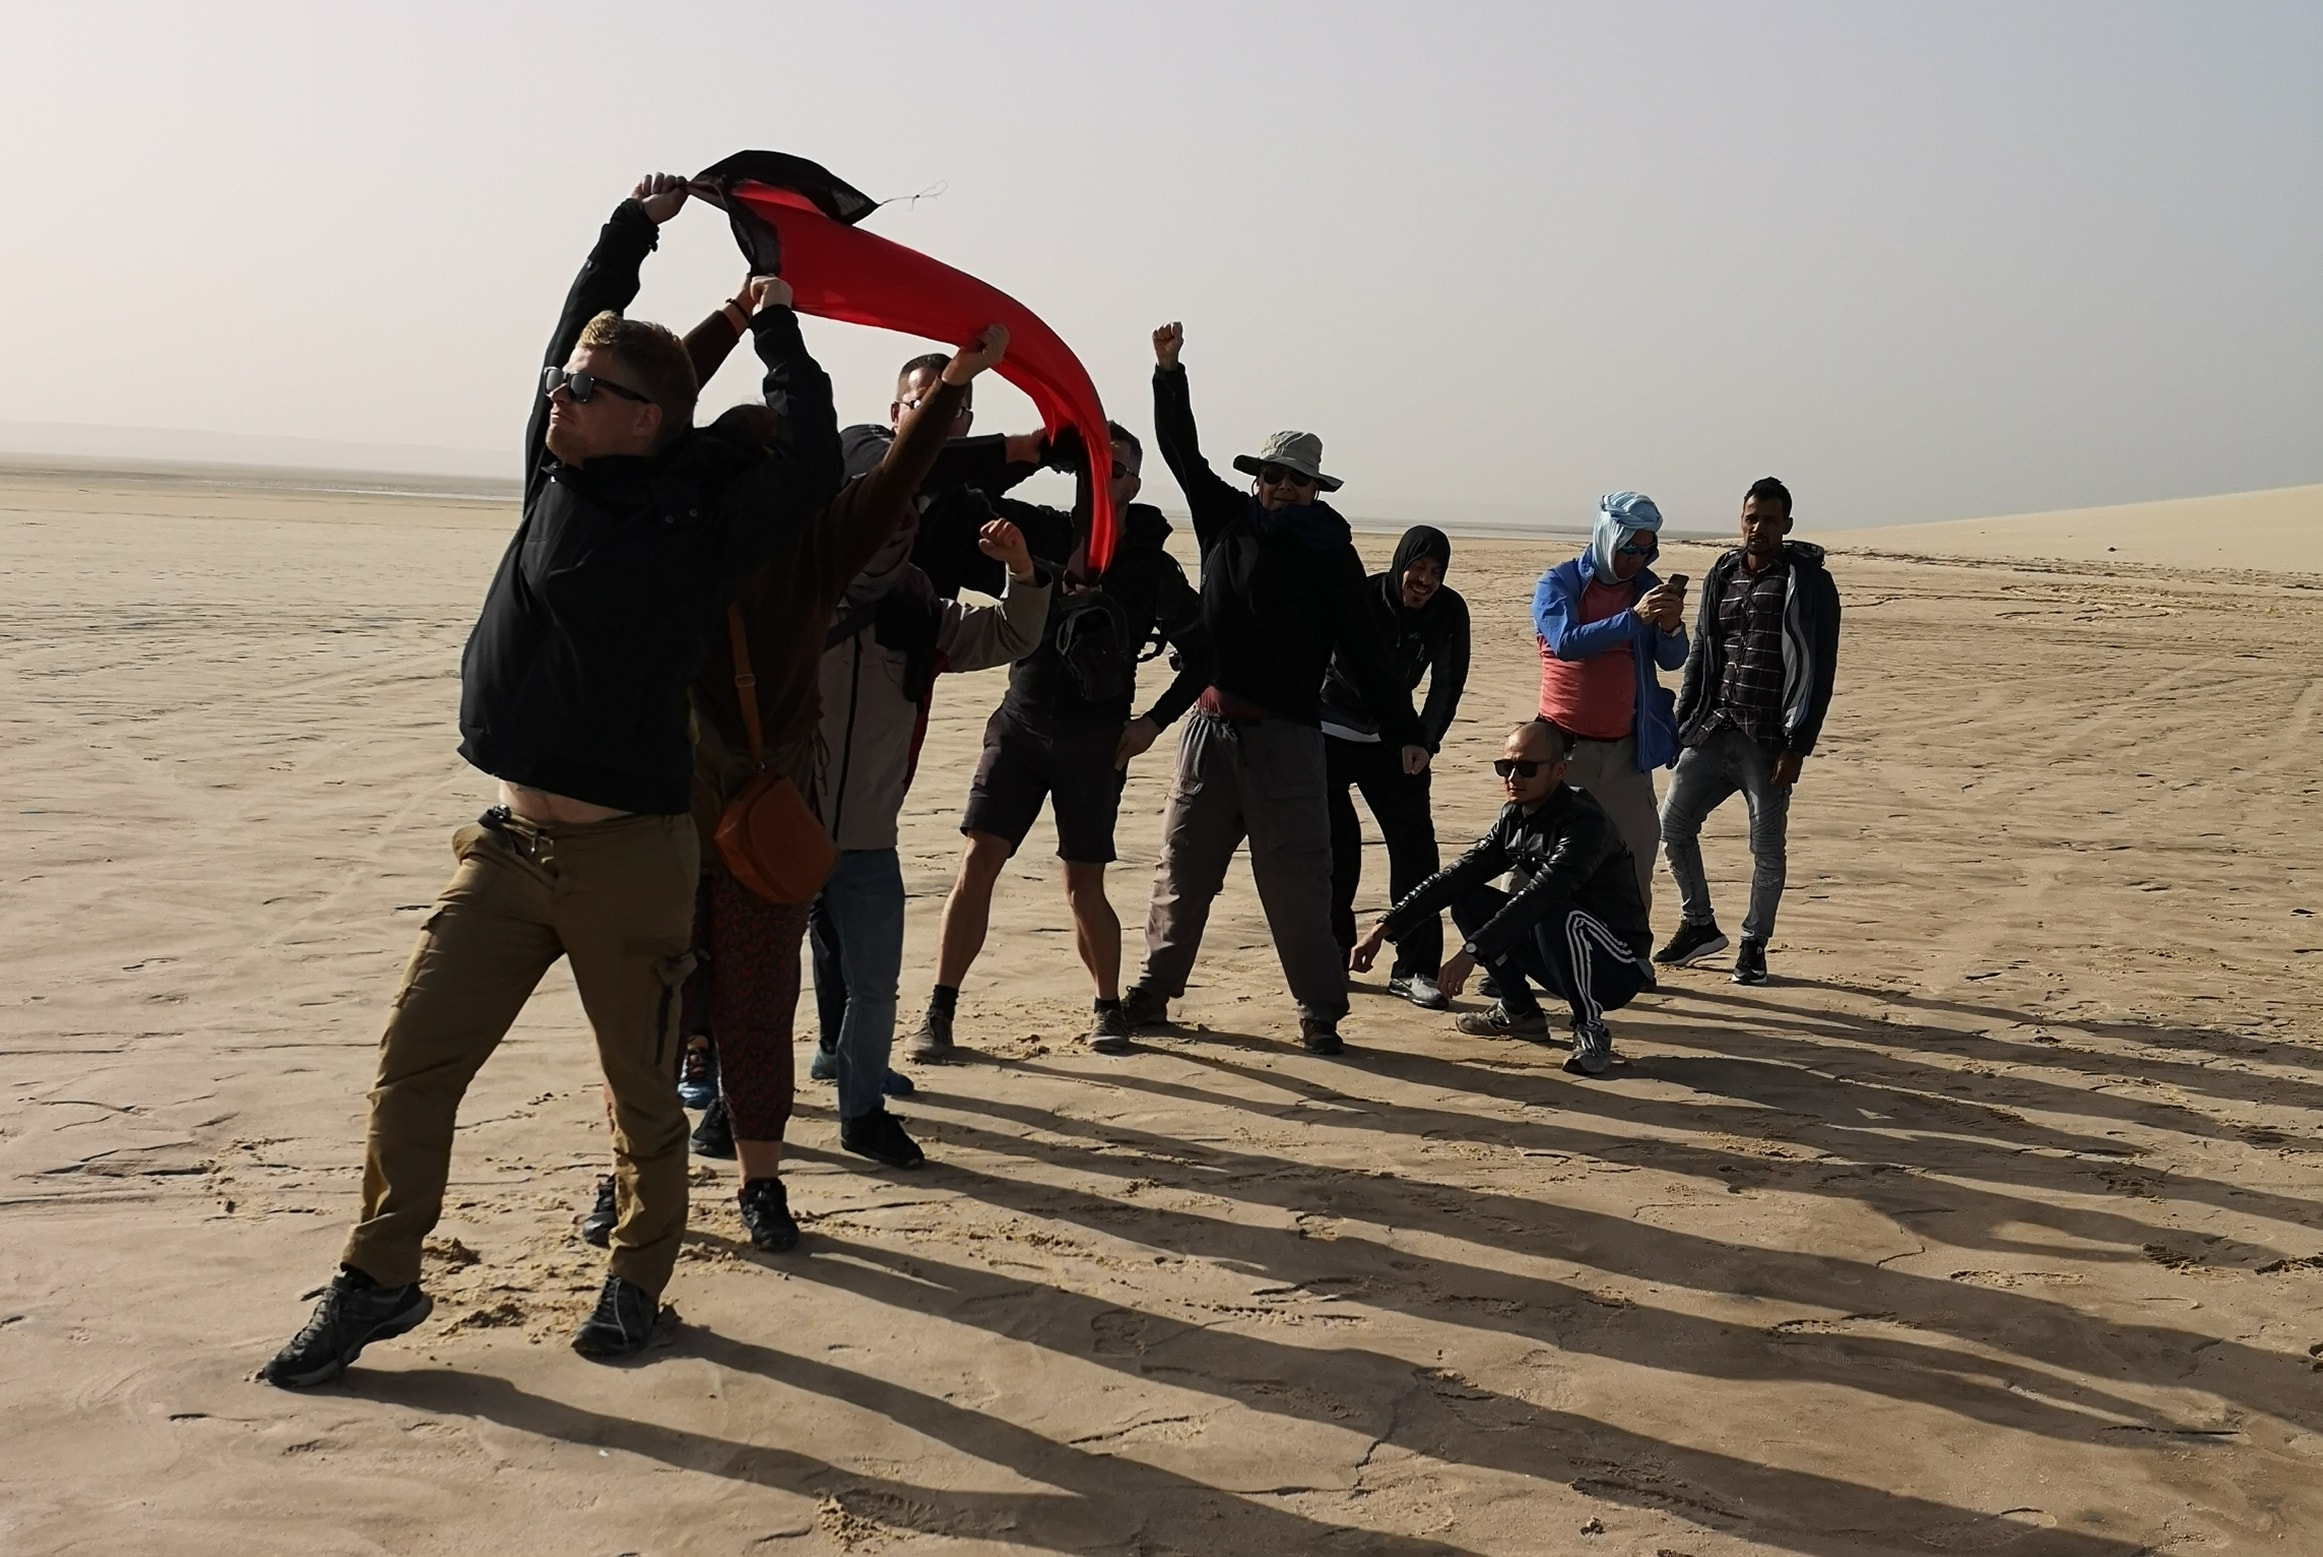 Our group walking in the desert of Western Sahara